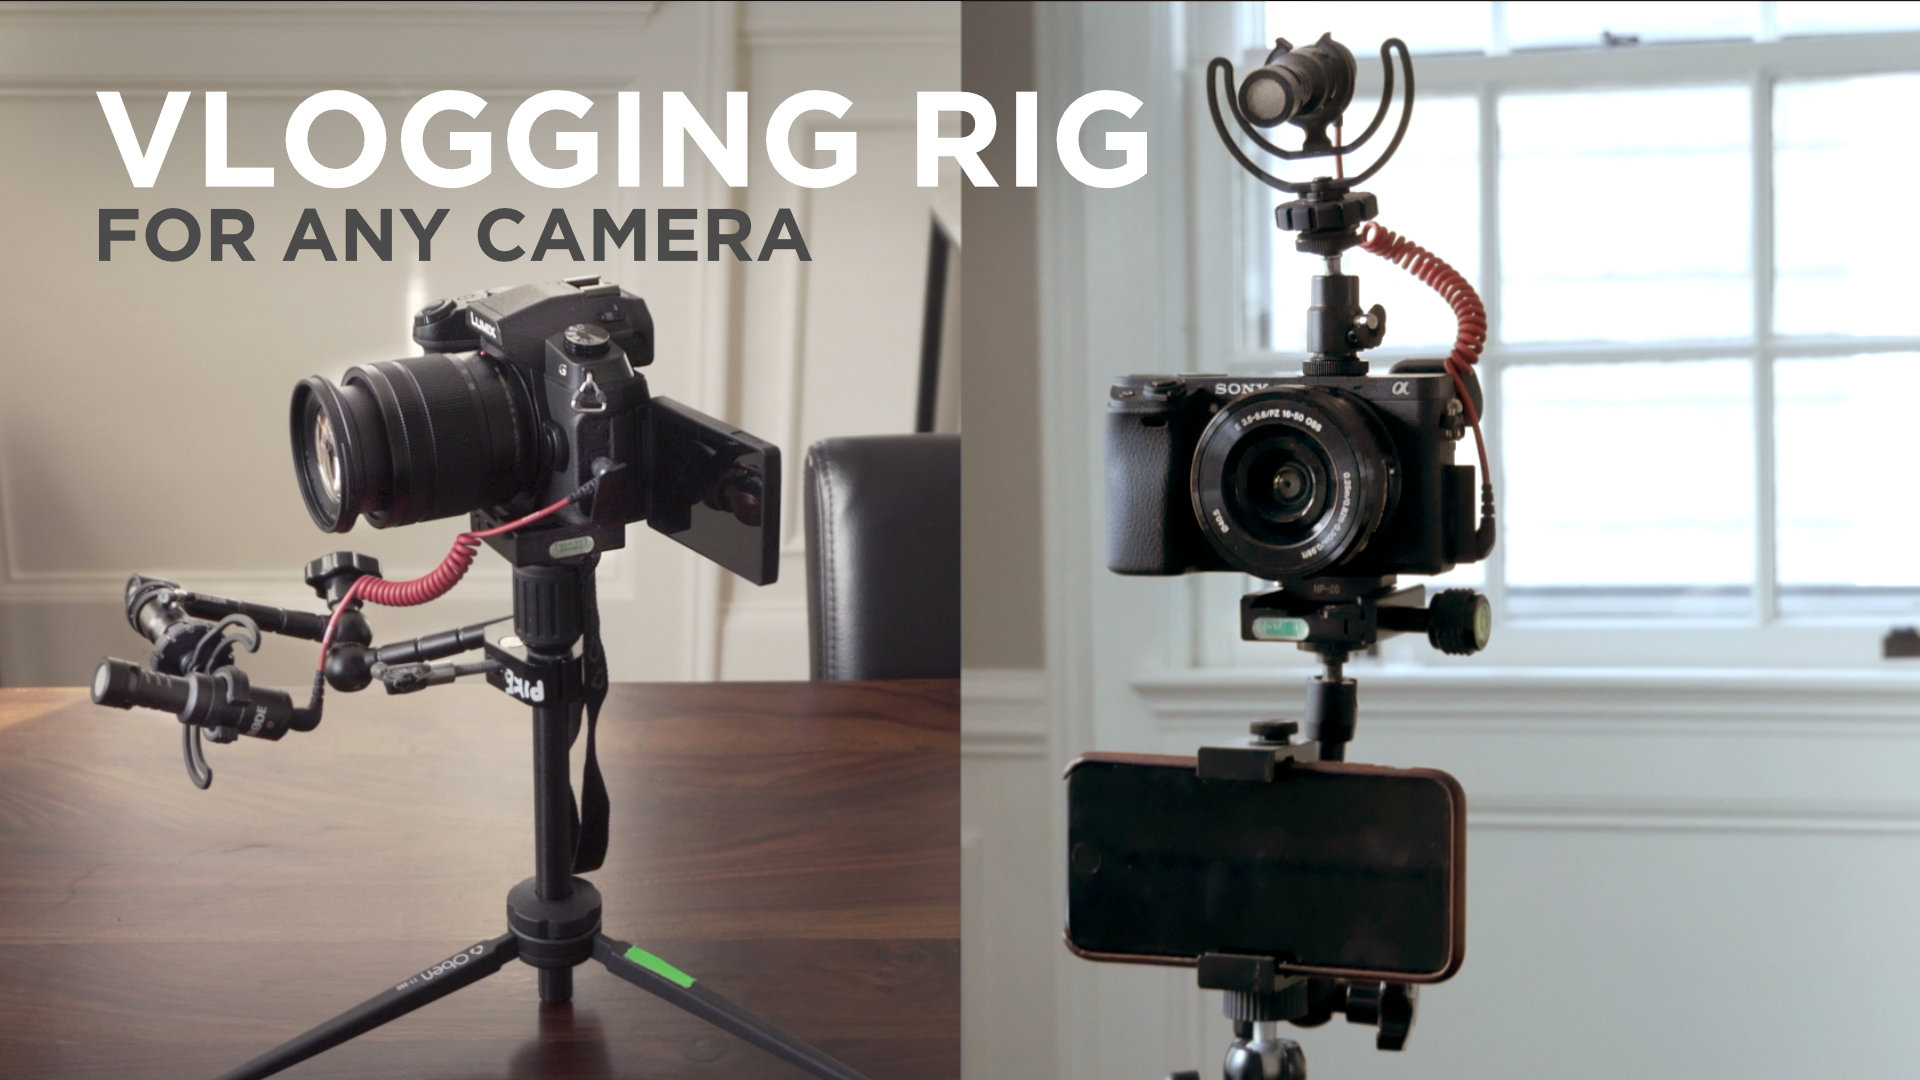 Custom Vlogging Rig for Any Camera!